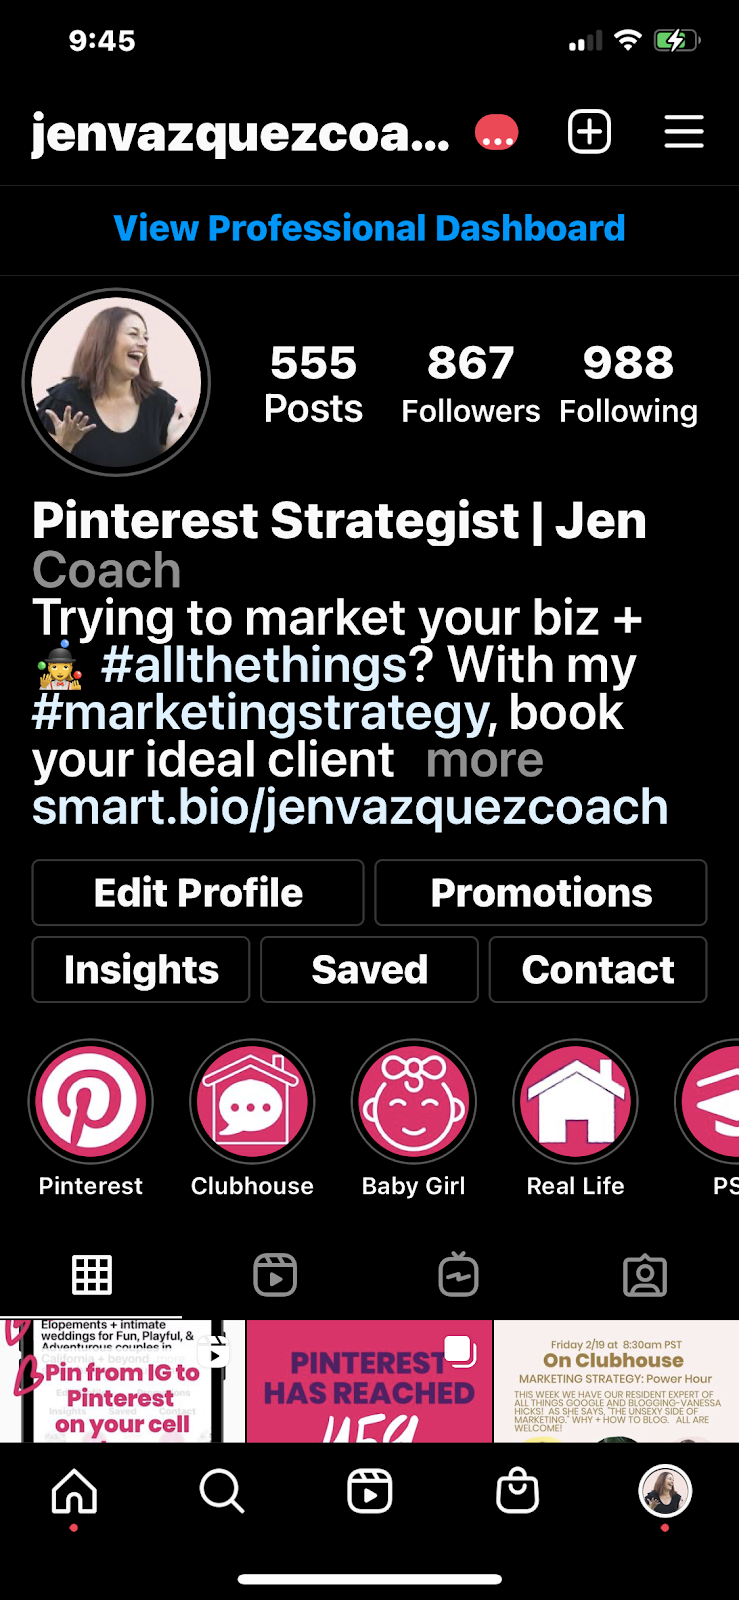 Instagram insights to see which post to share on Pinterest by Jen Vazquez Marketing Strategist 1